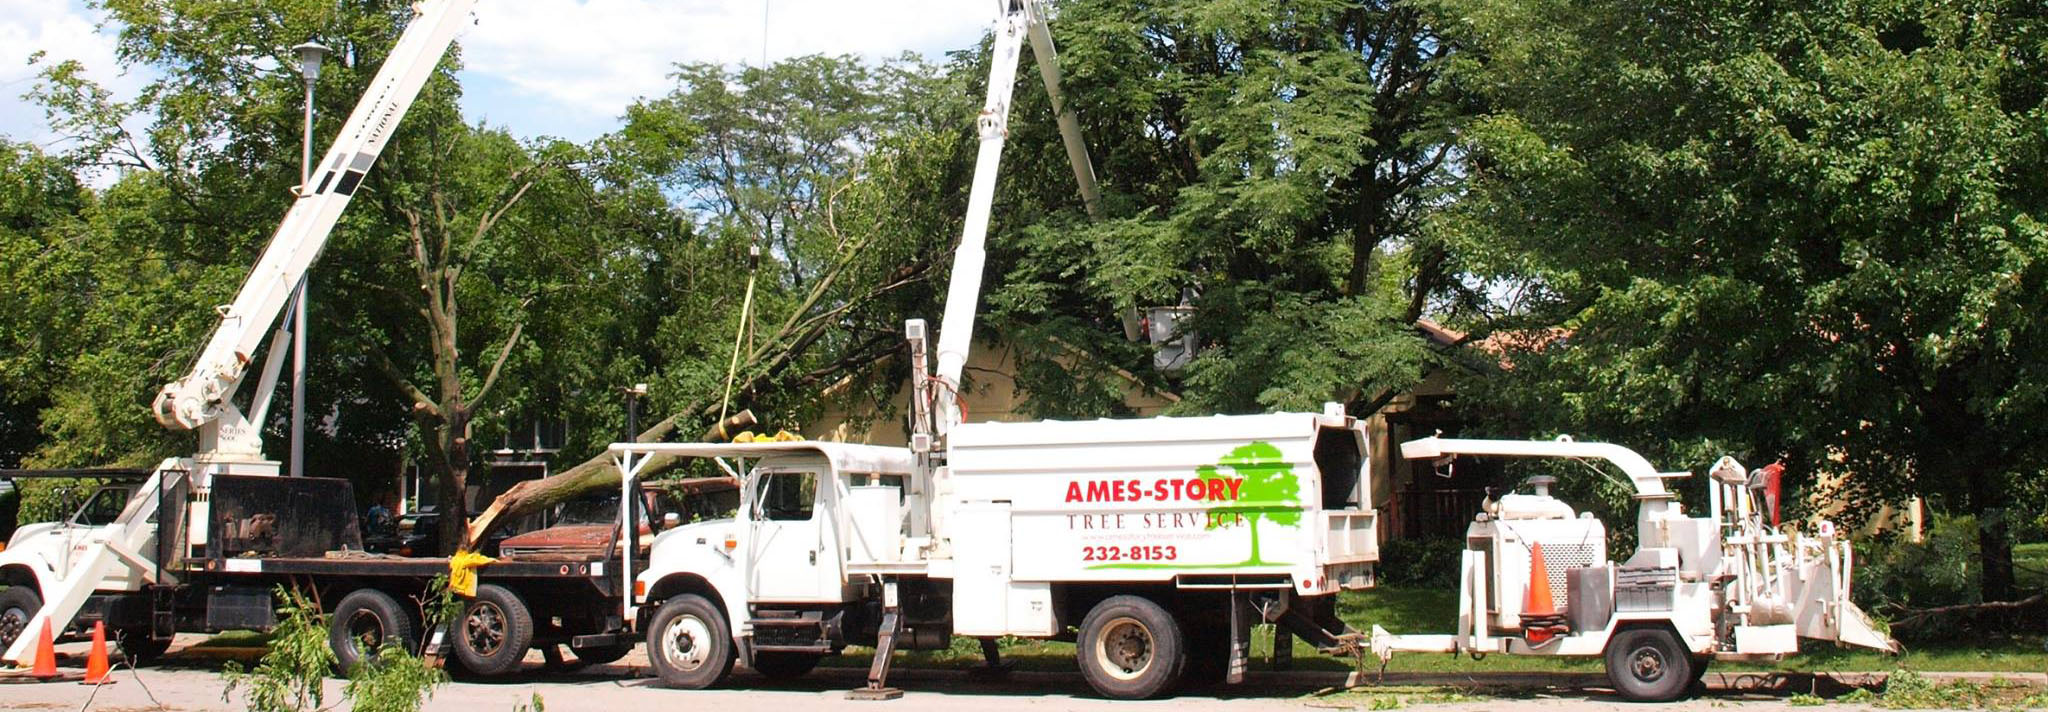 ames story tree removal trucks